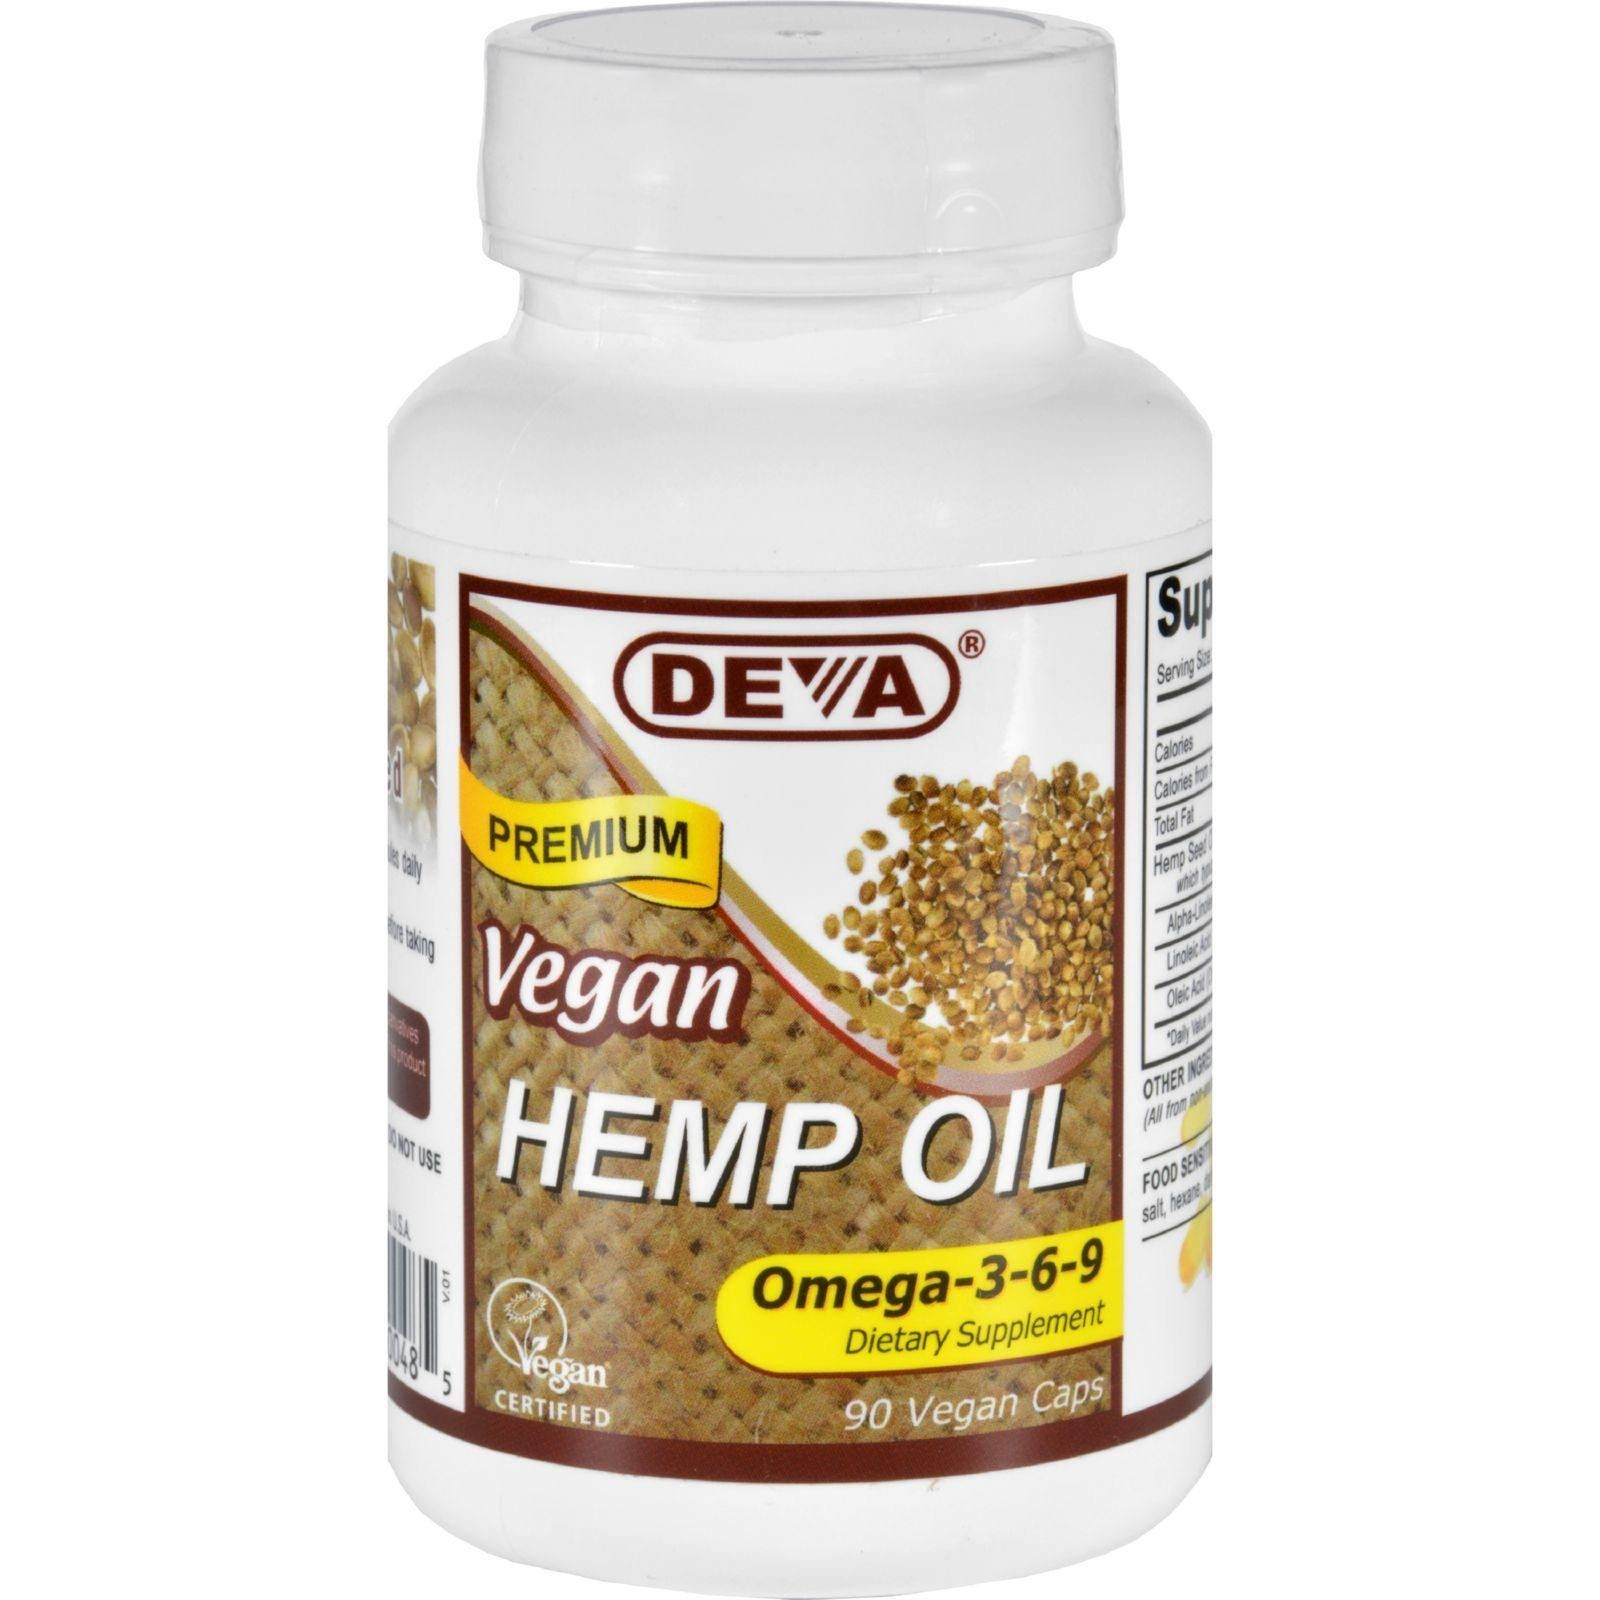 Hemp Oil Or Hemp Seed Oil Is A Popular Oil Commonly Used In